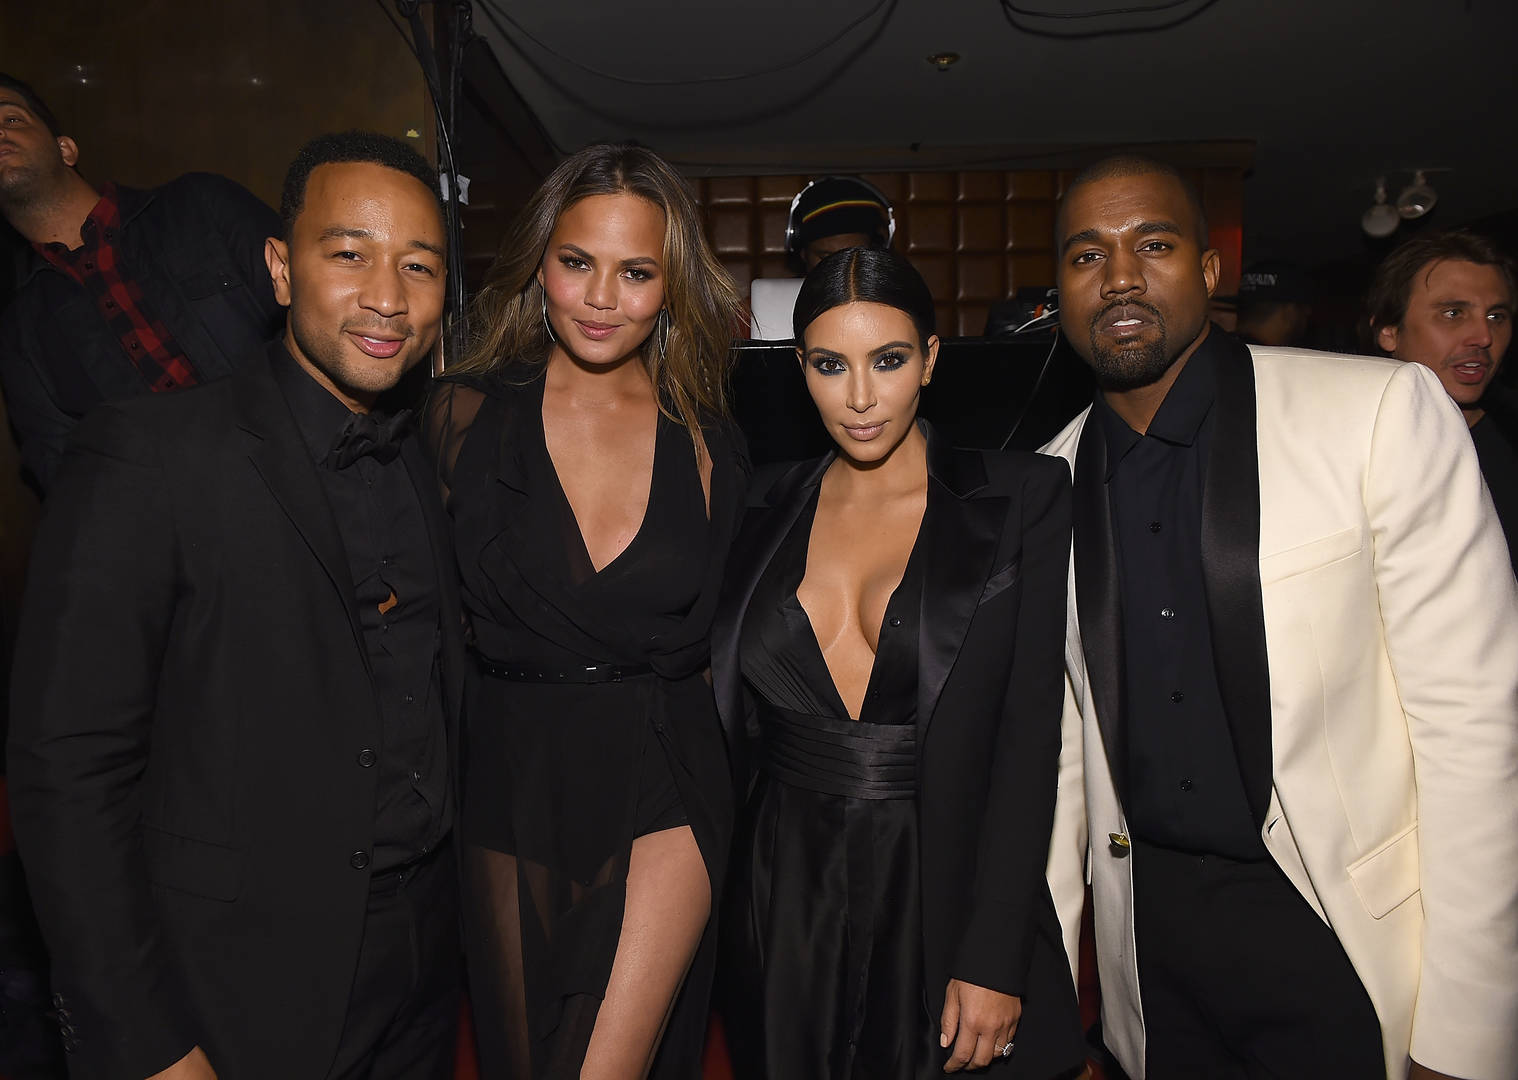 John Legend Says He & Kanye West Were Never Close, Criticizes Rapper's Support Of Trump